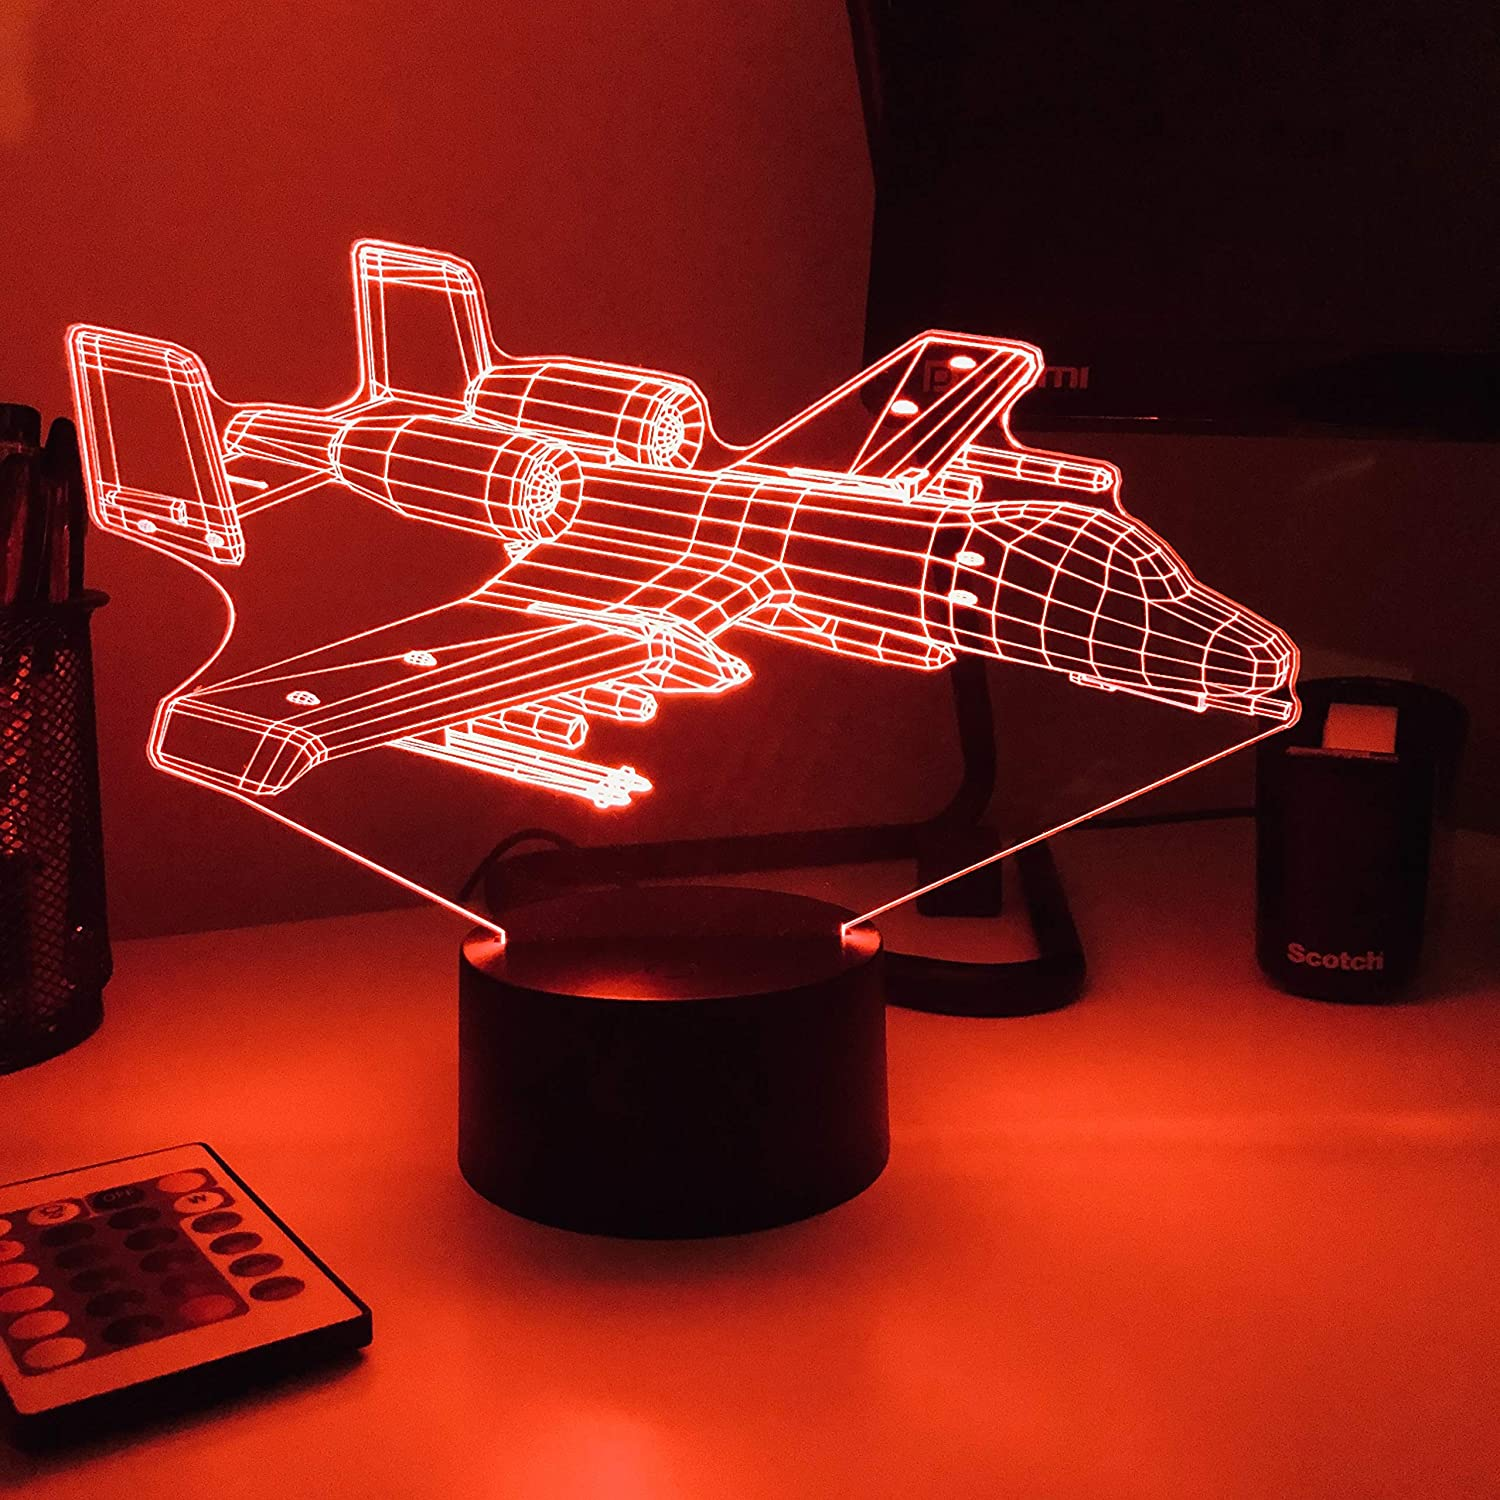 A-10 Warthog 3D Optical Illusion Lamp With Remote